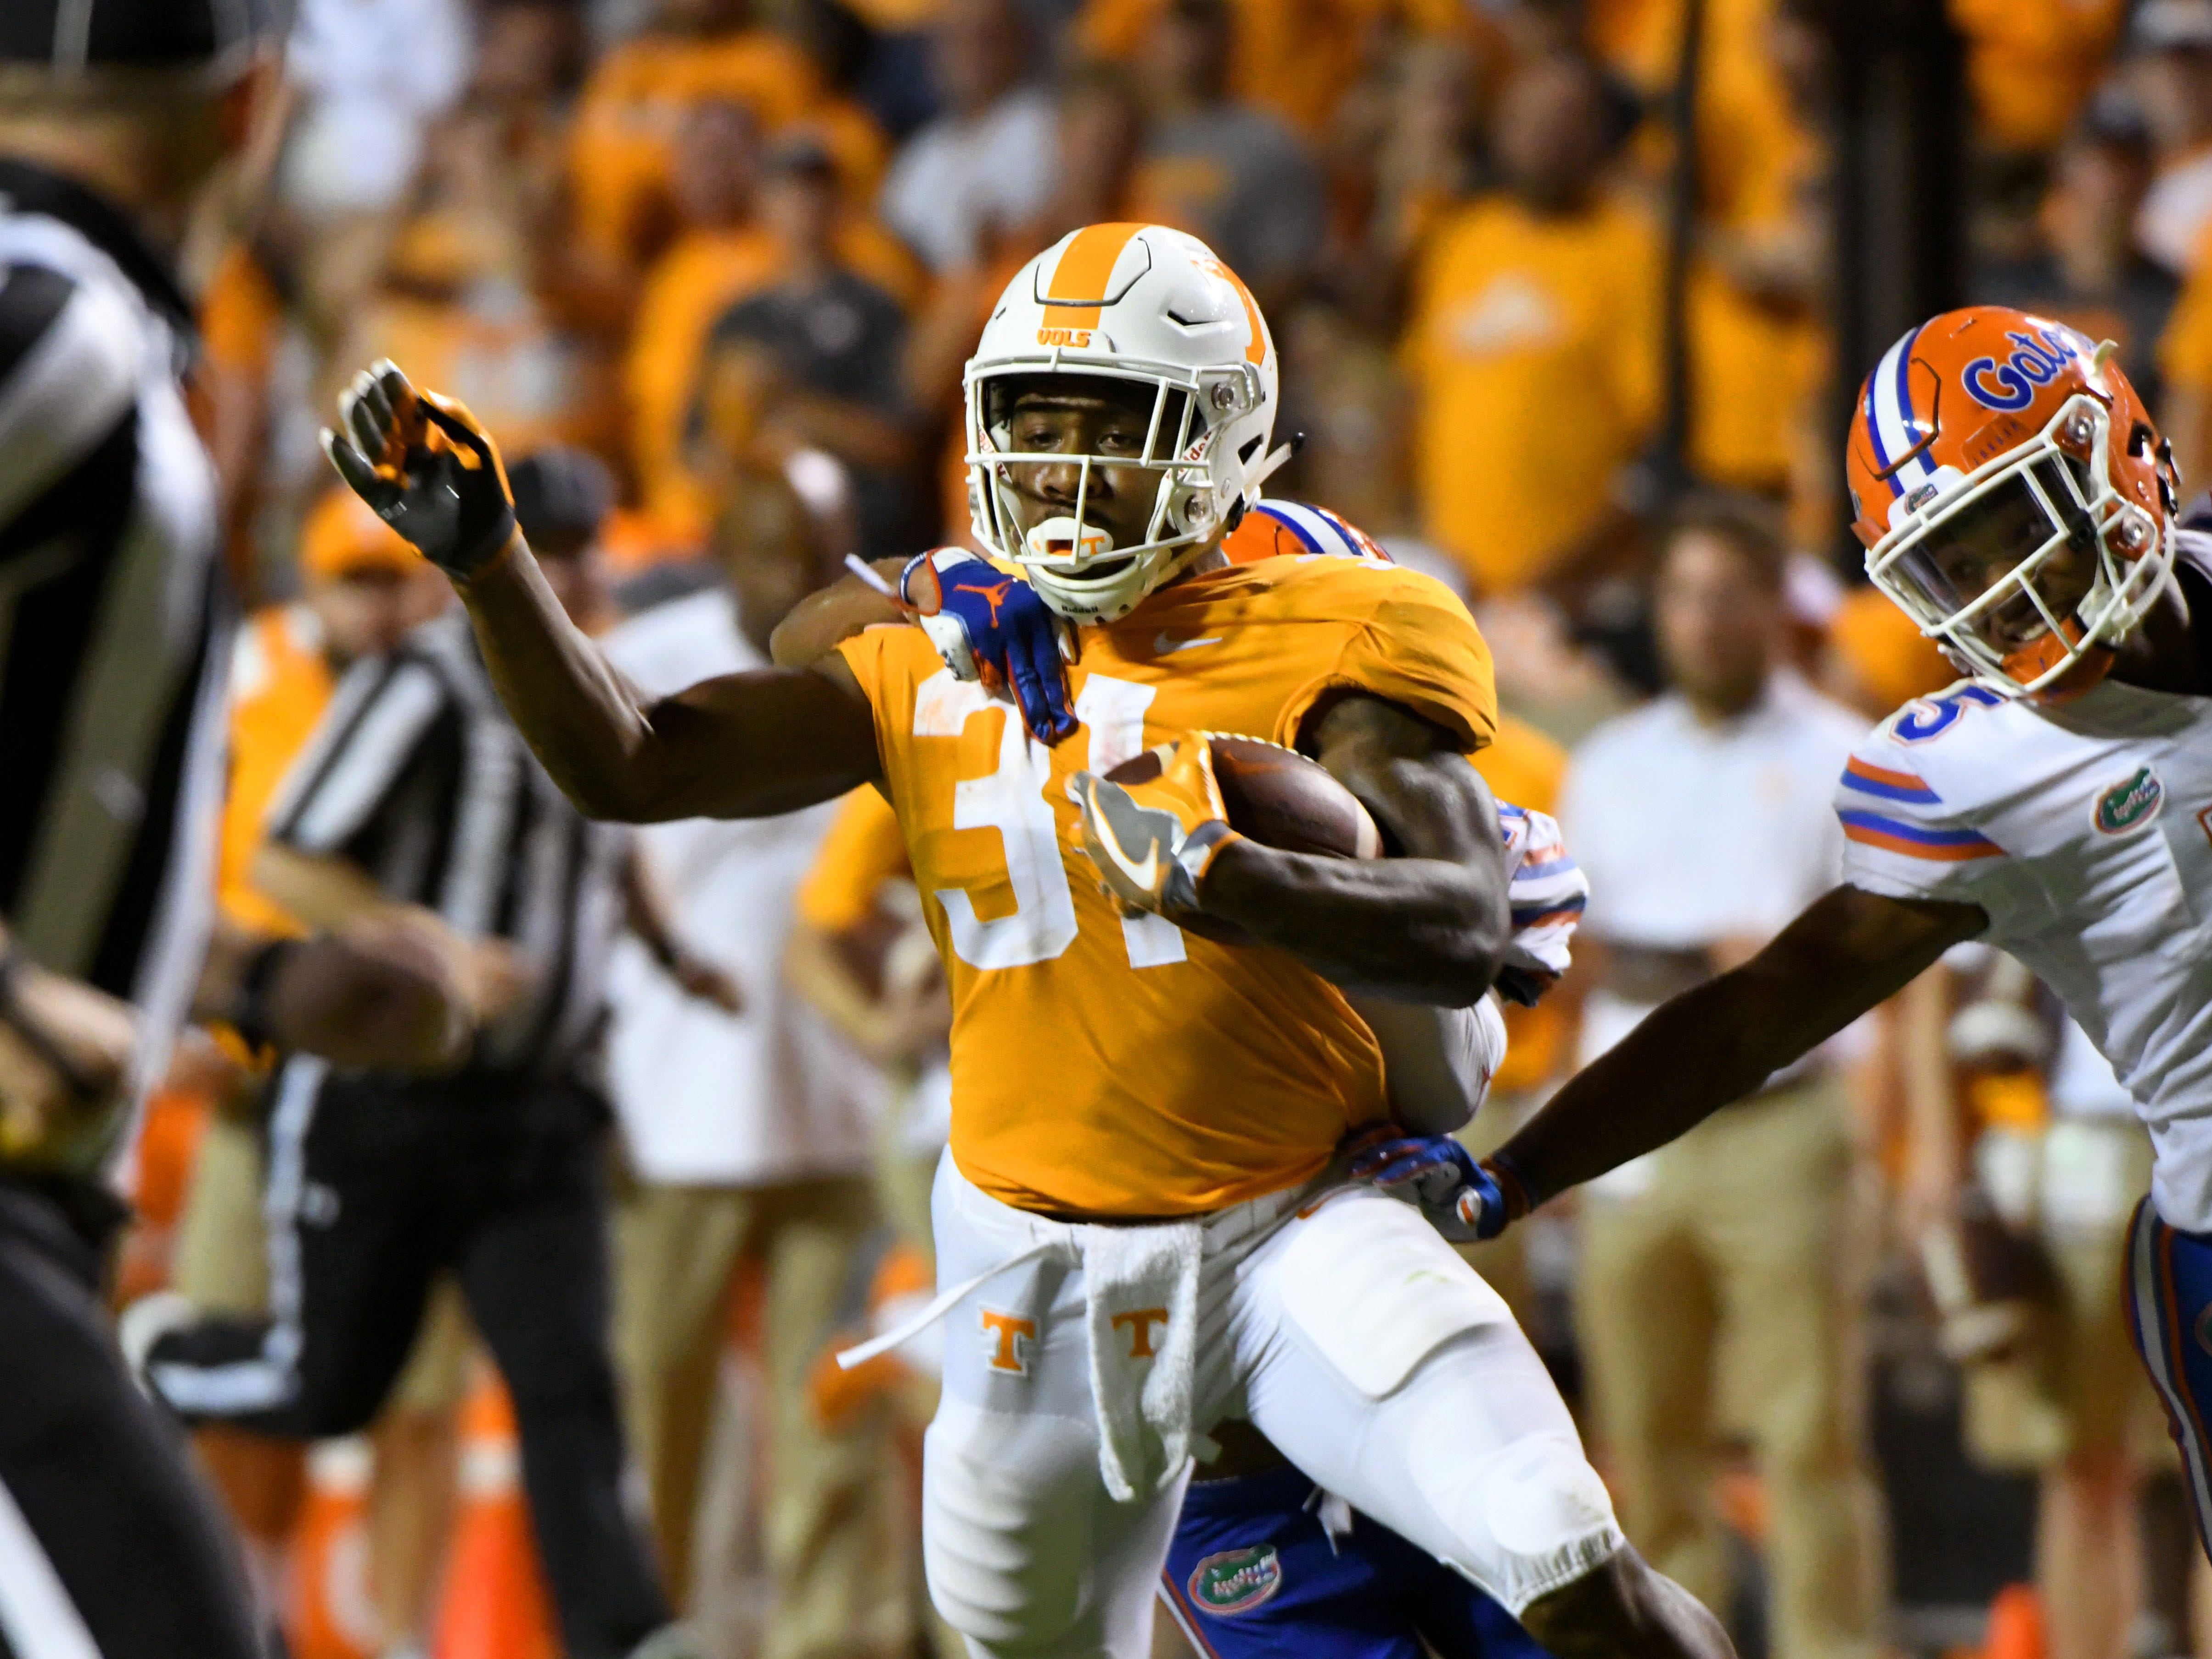 Tennessee running back Madre London (31) is tackled during second half of their 47-21 loss to Florida in Neyland Stadium Saturday, September 22, 2018 in Knoxville, Tenn.